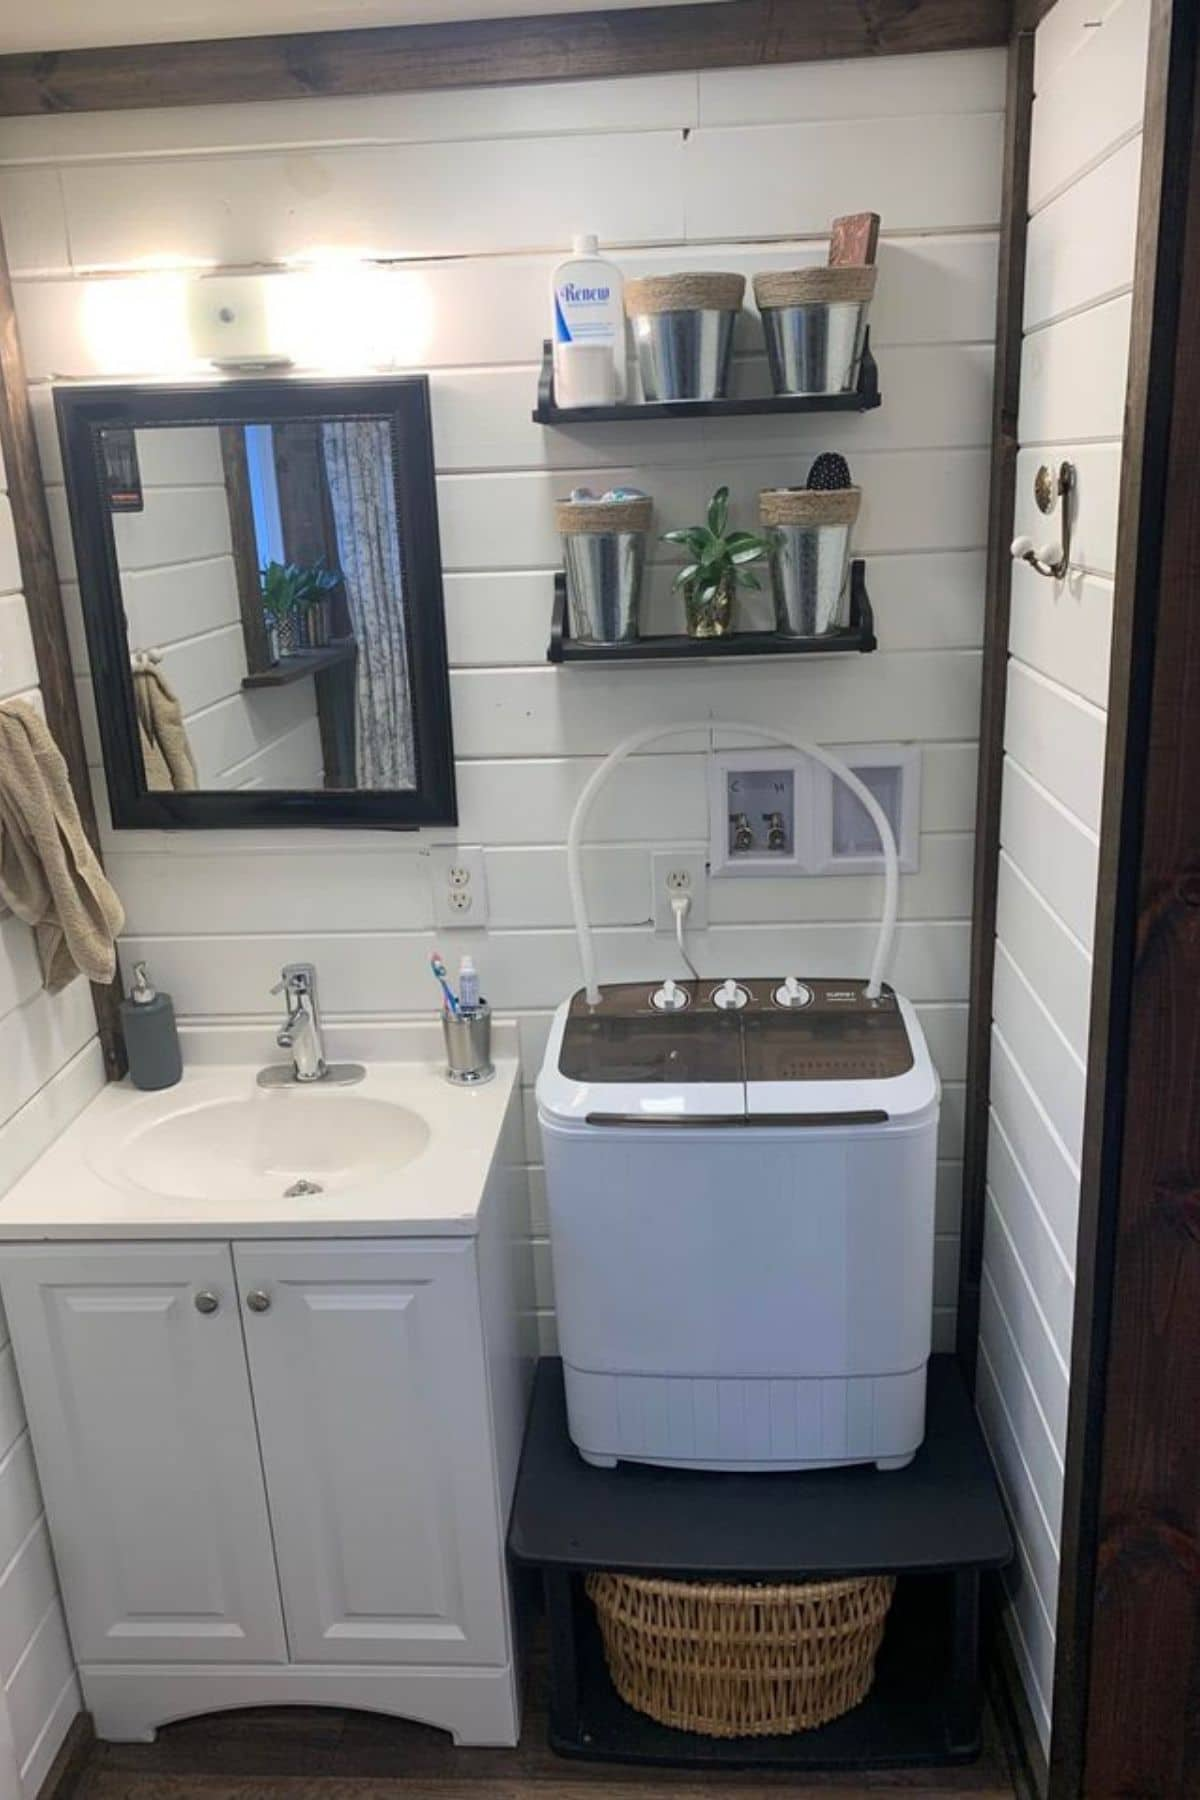 Bathroom with sink and portable washing machine on bench